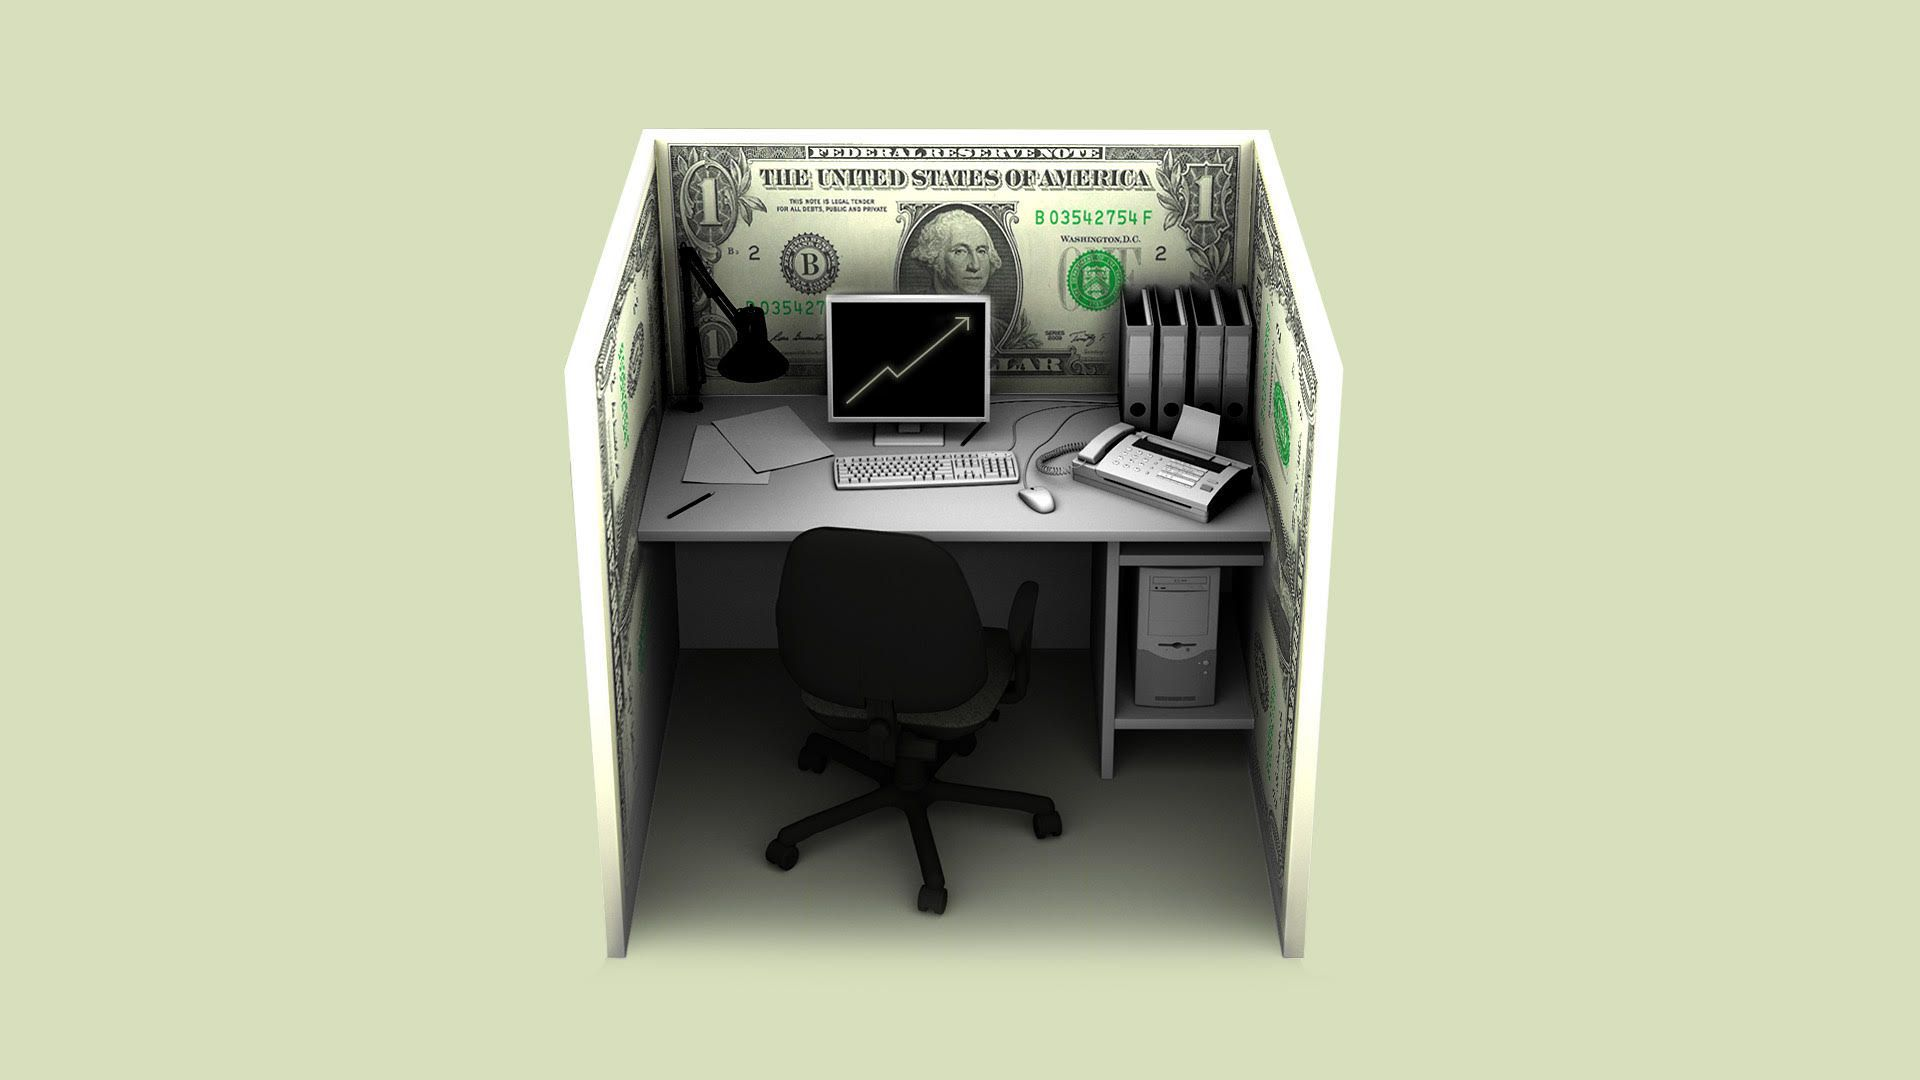 Illustration of  a cubicle made of money